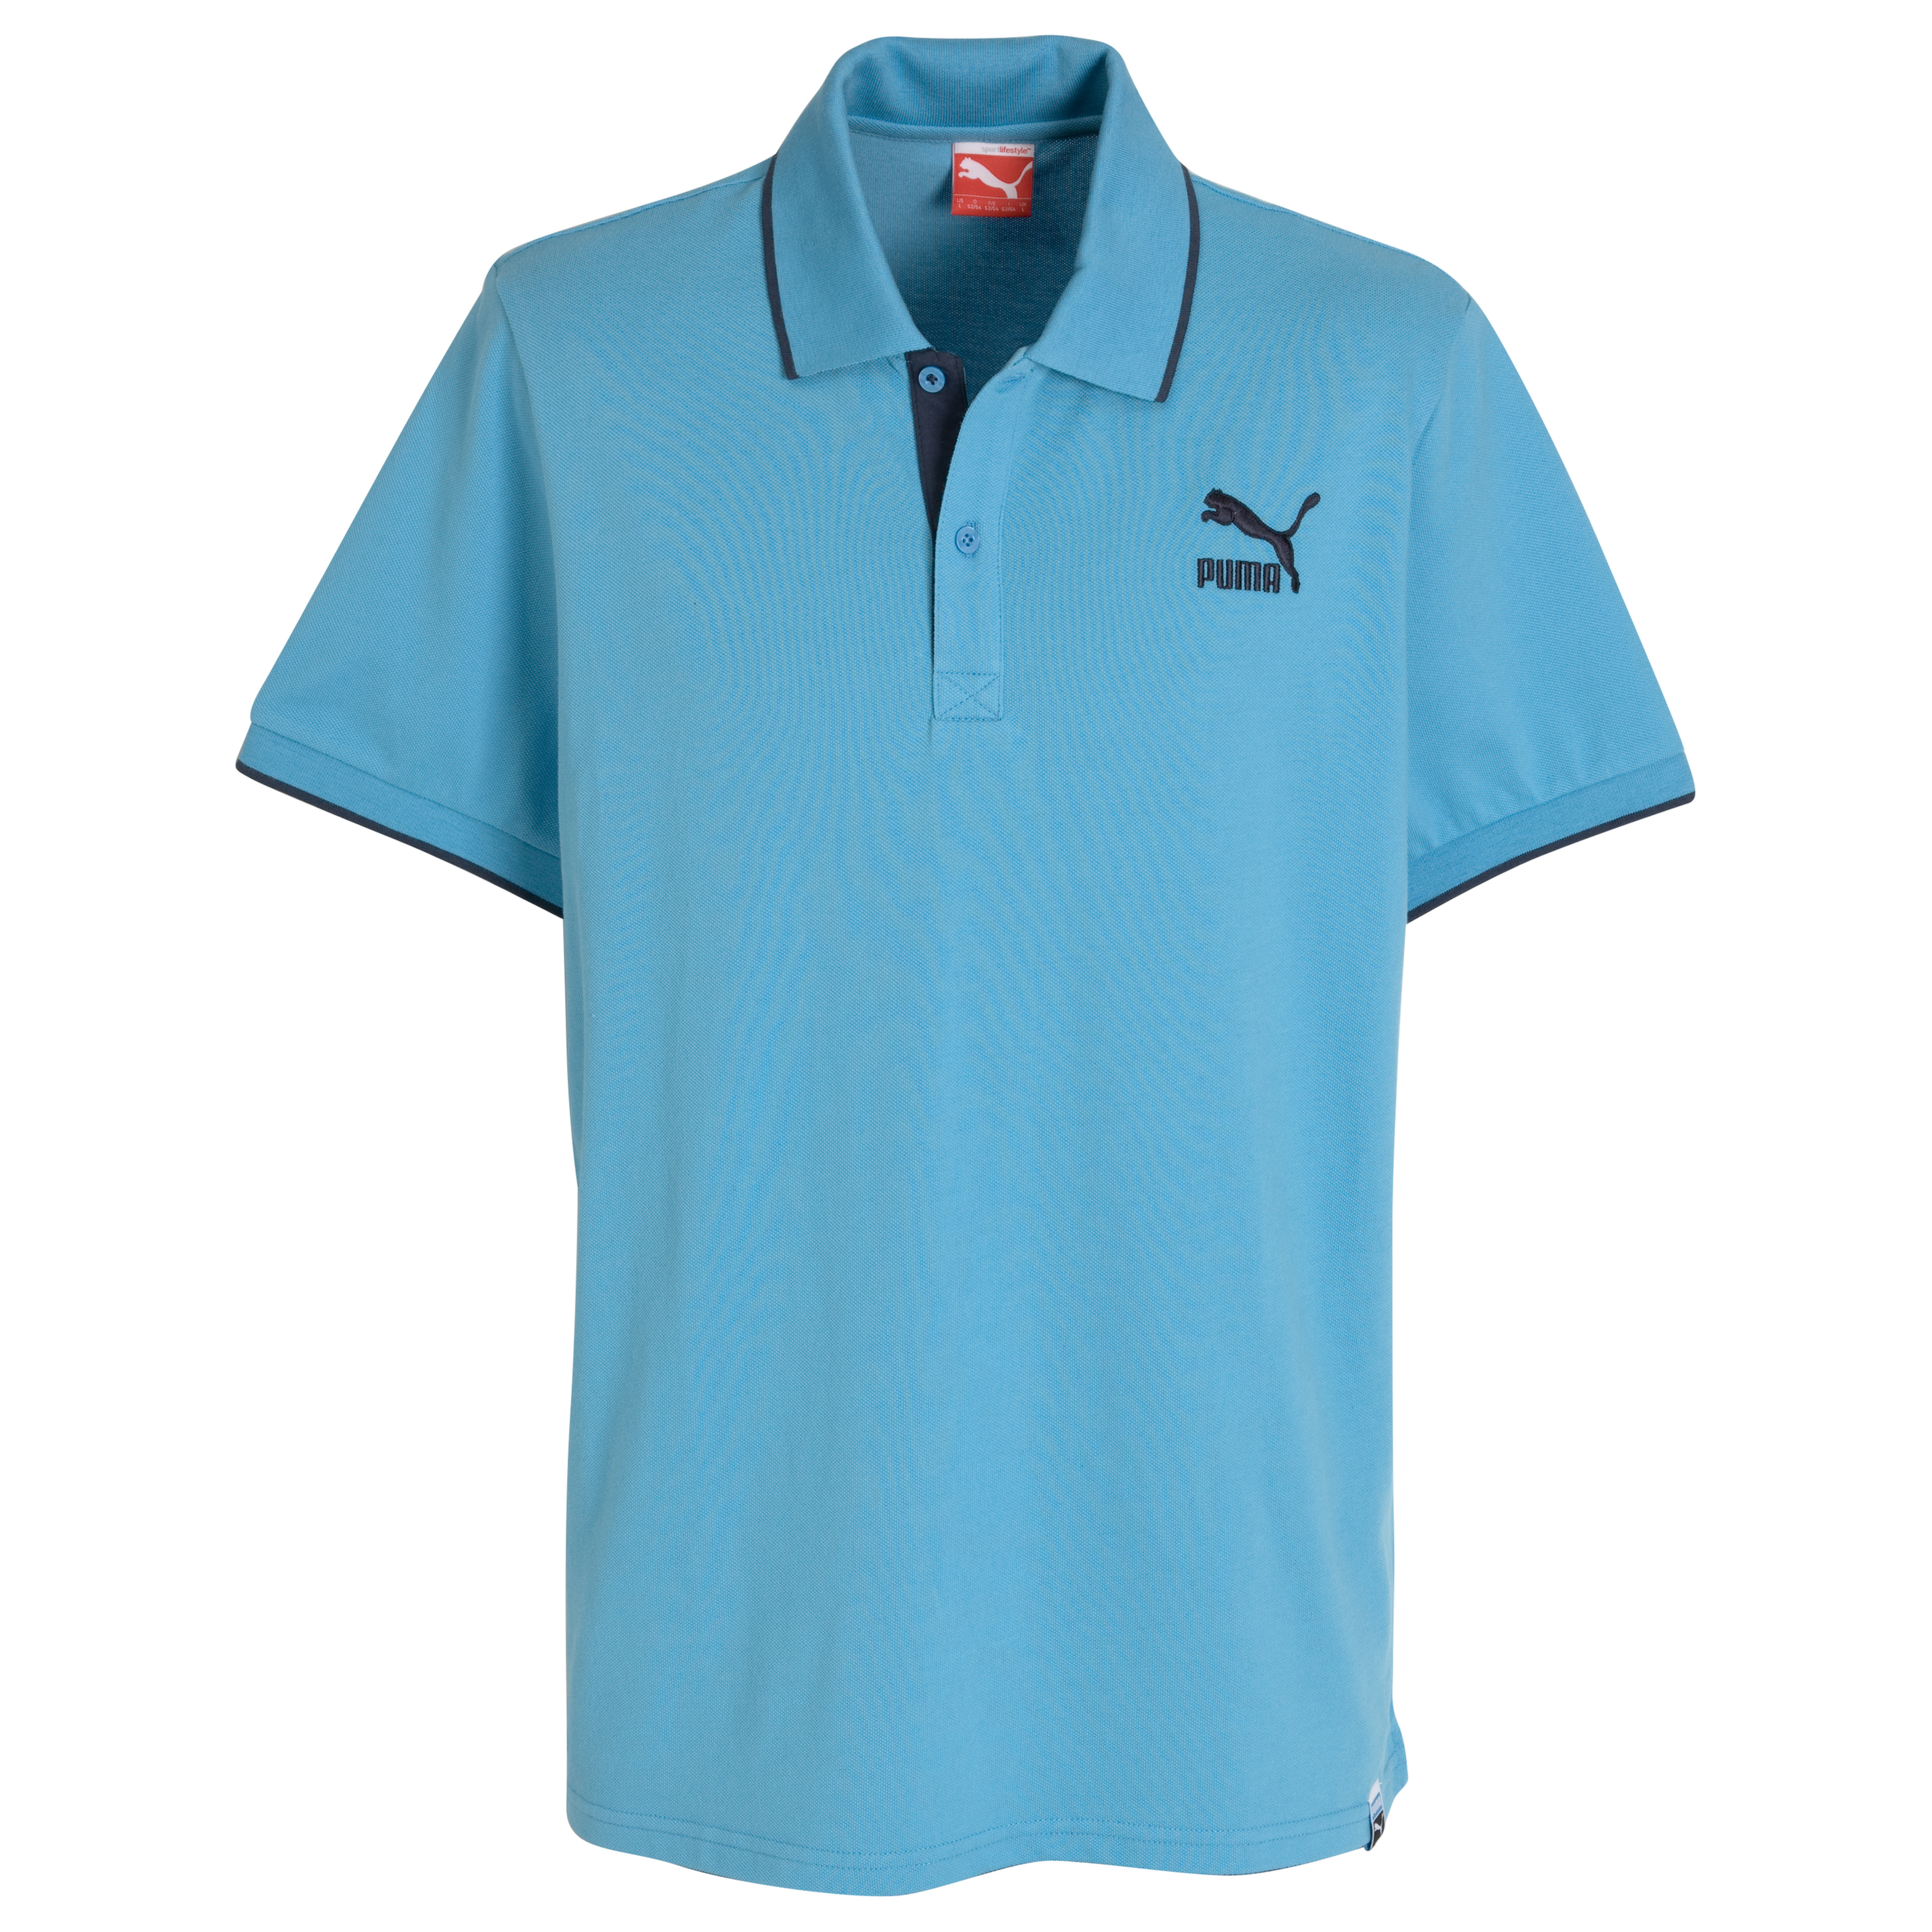 Puma Heroes Polo Shirt - Heritage Blue